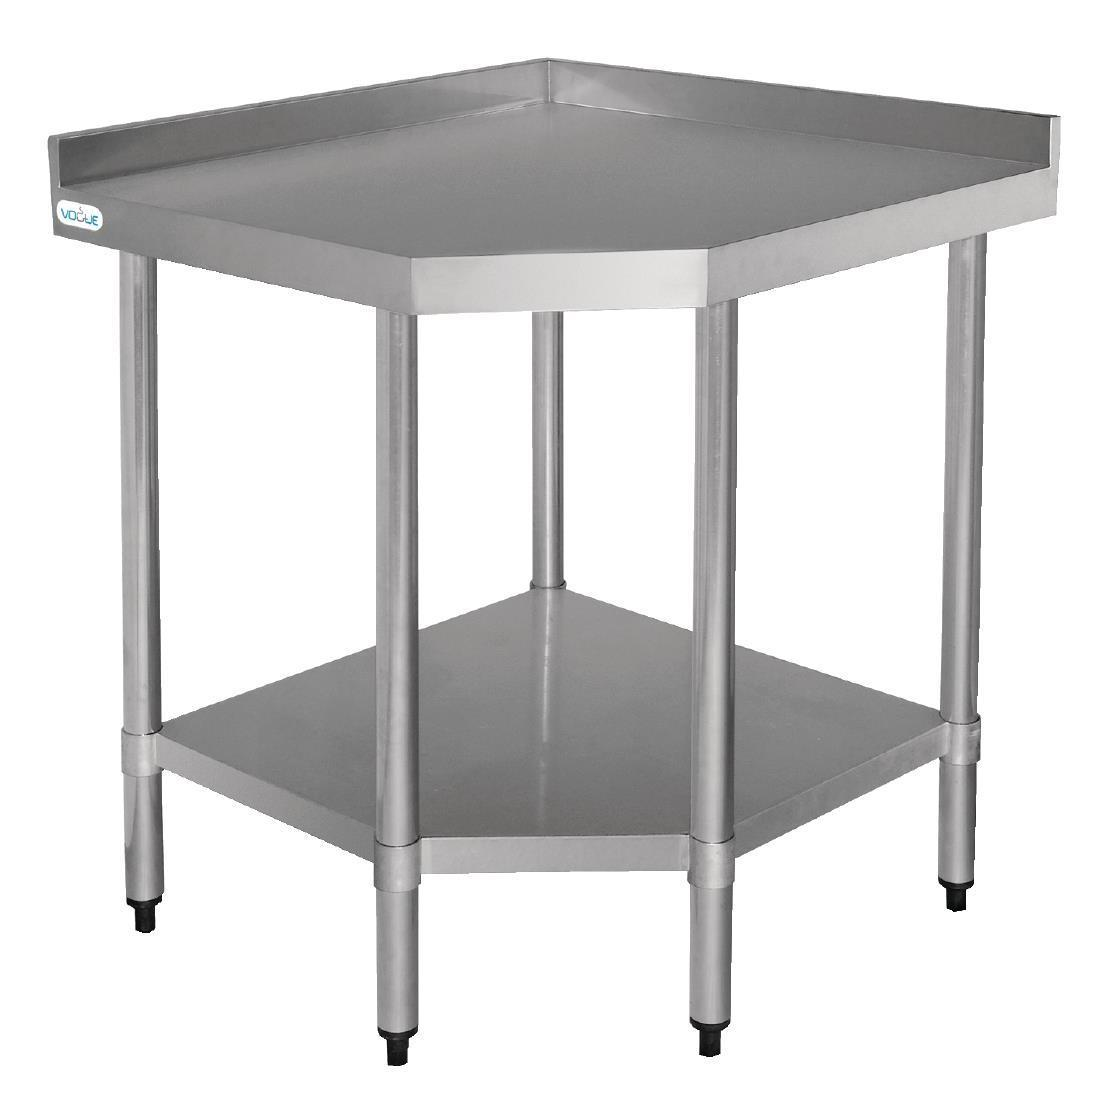 Vogue Stainless Steel Corner Table 600mm - Each - CB907